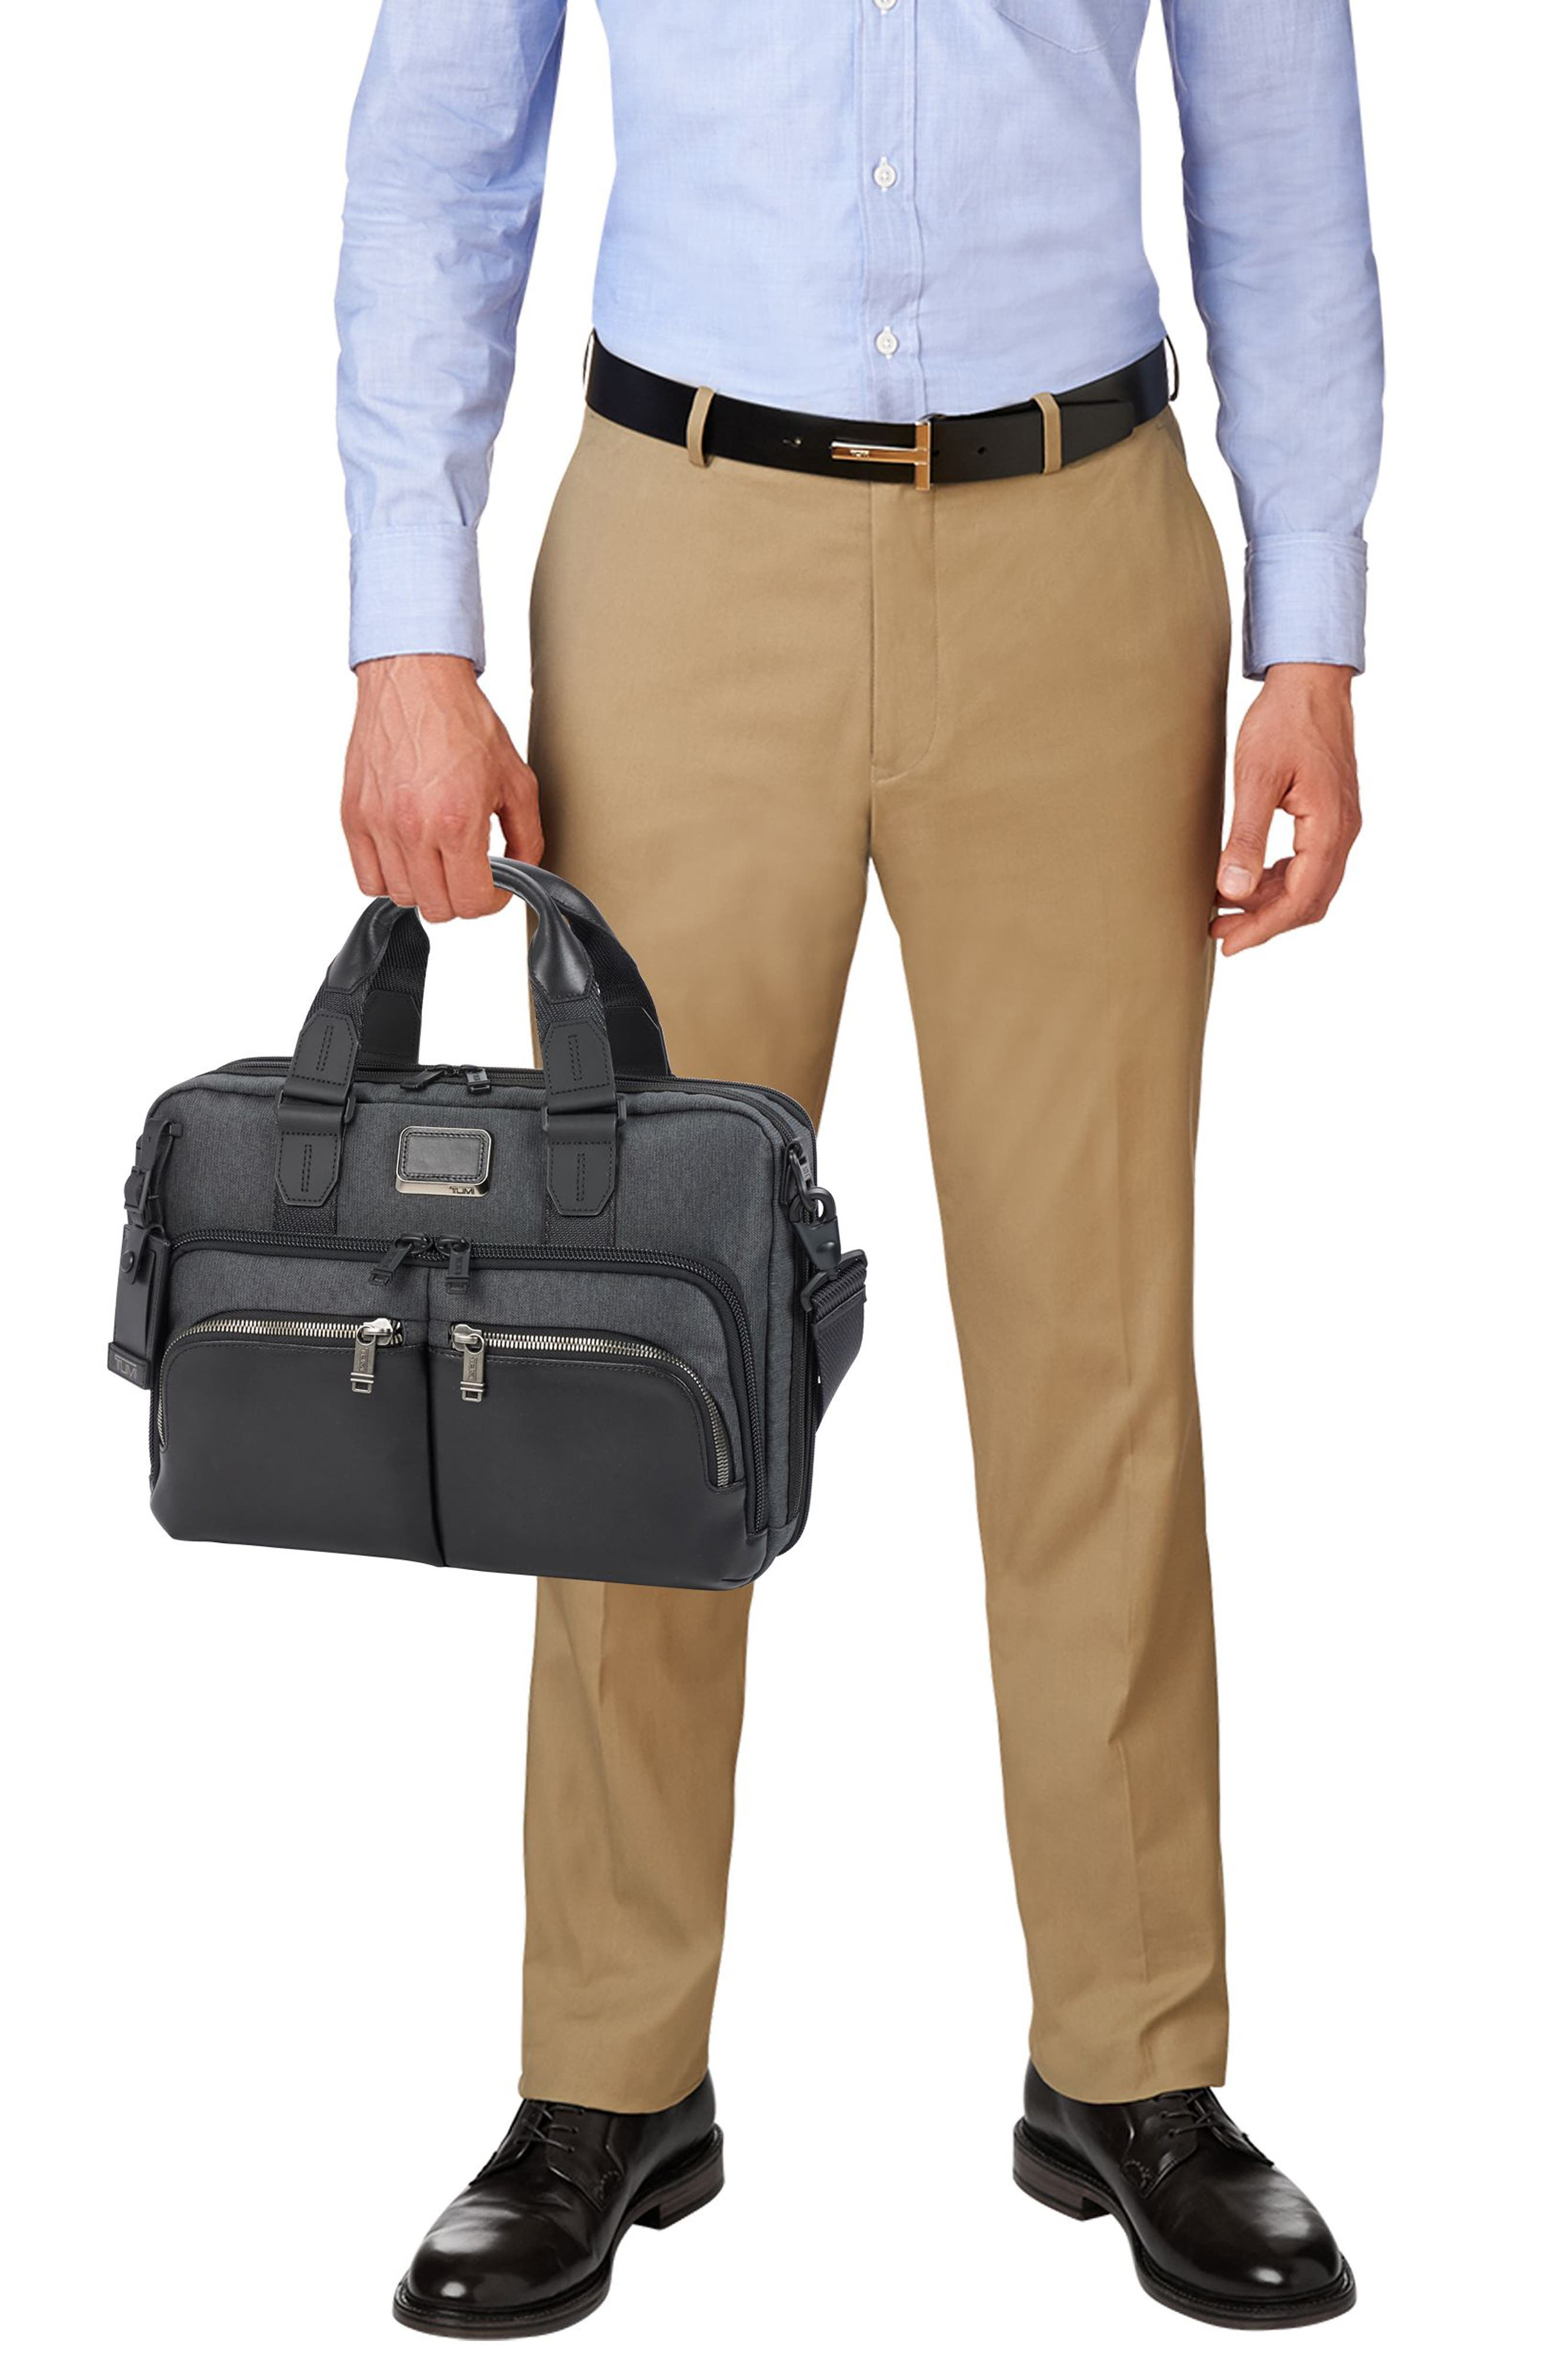 Albany - Slim Commuter Briefcase,                             Alternate thumbnail 6, color,                             ANTHRACITE